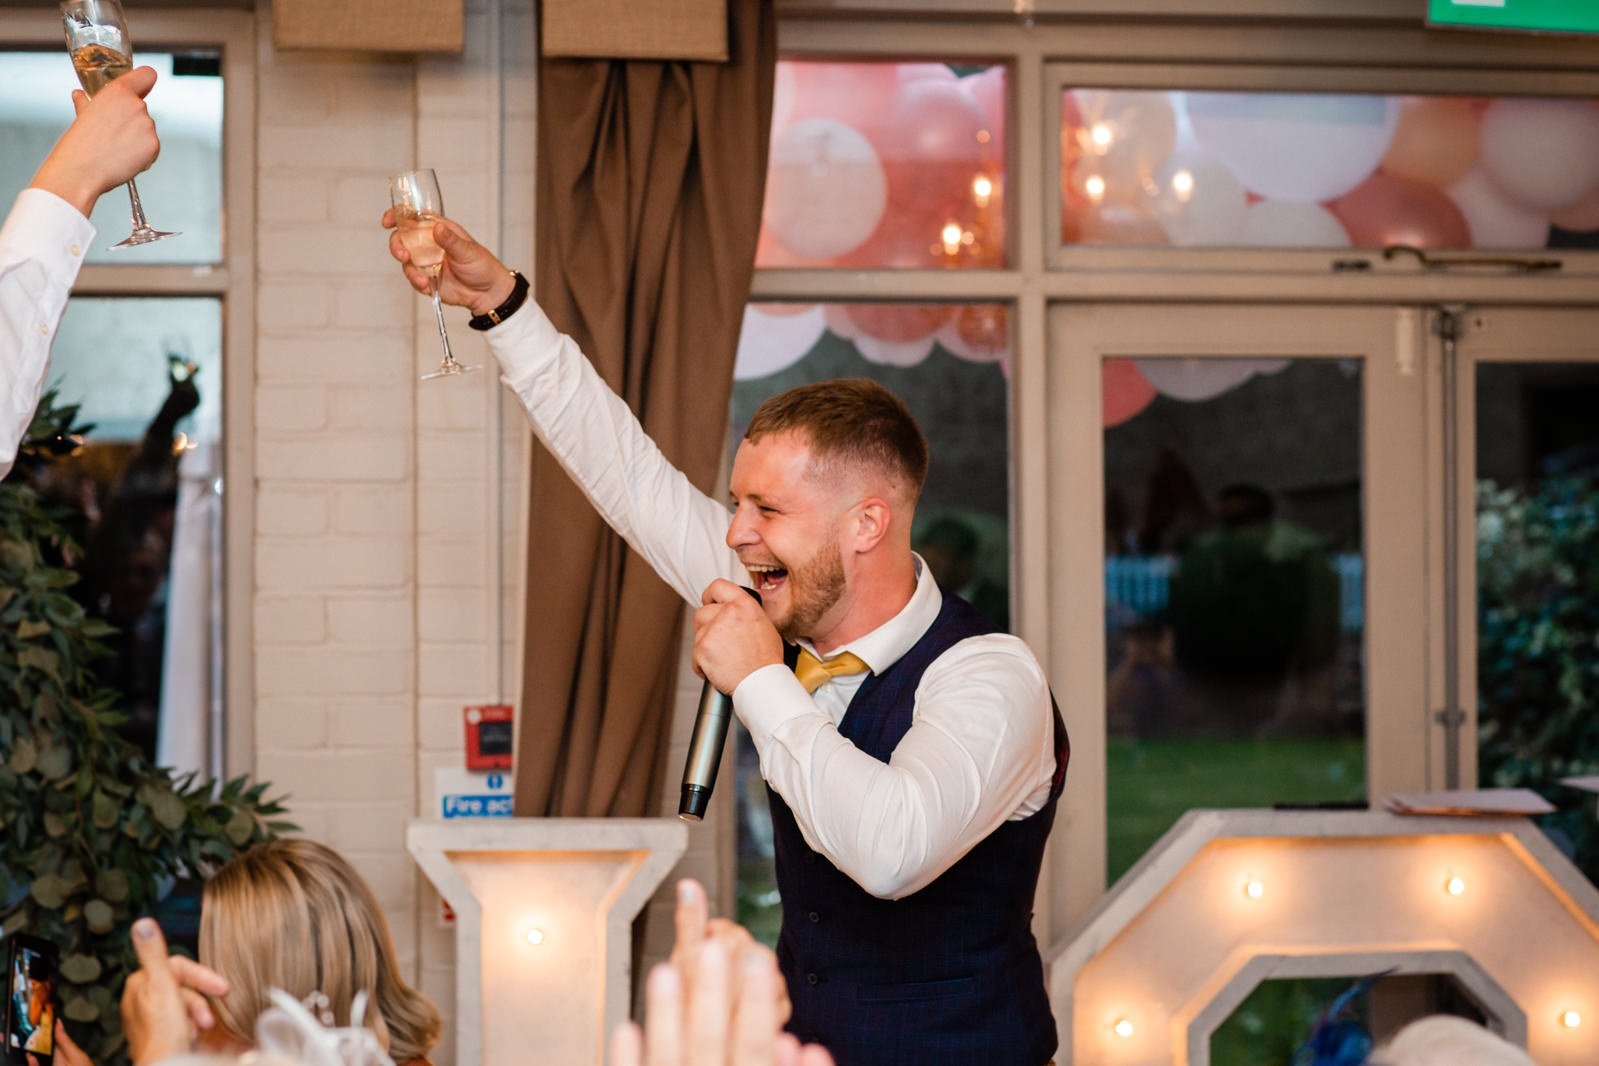 The Elephant Pangbourne Wedding - Stunning Kayleigh & Shane 83